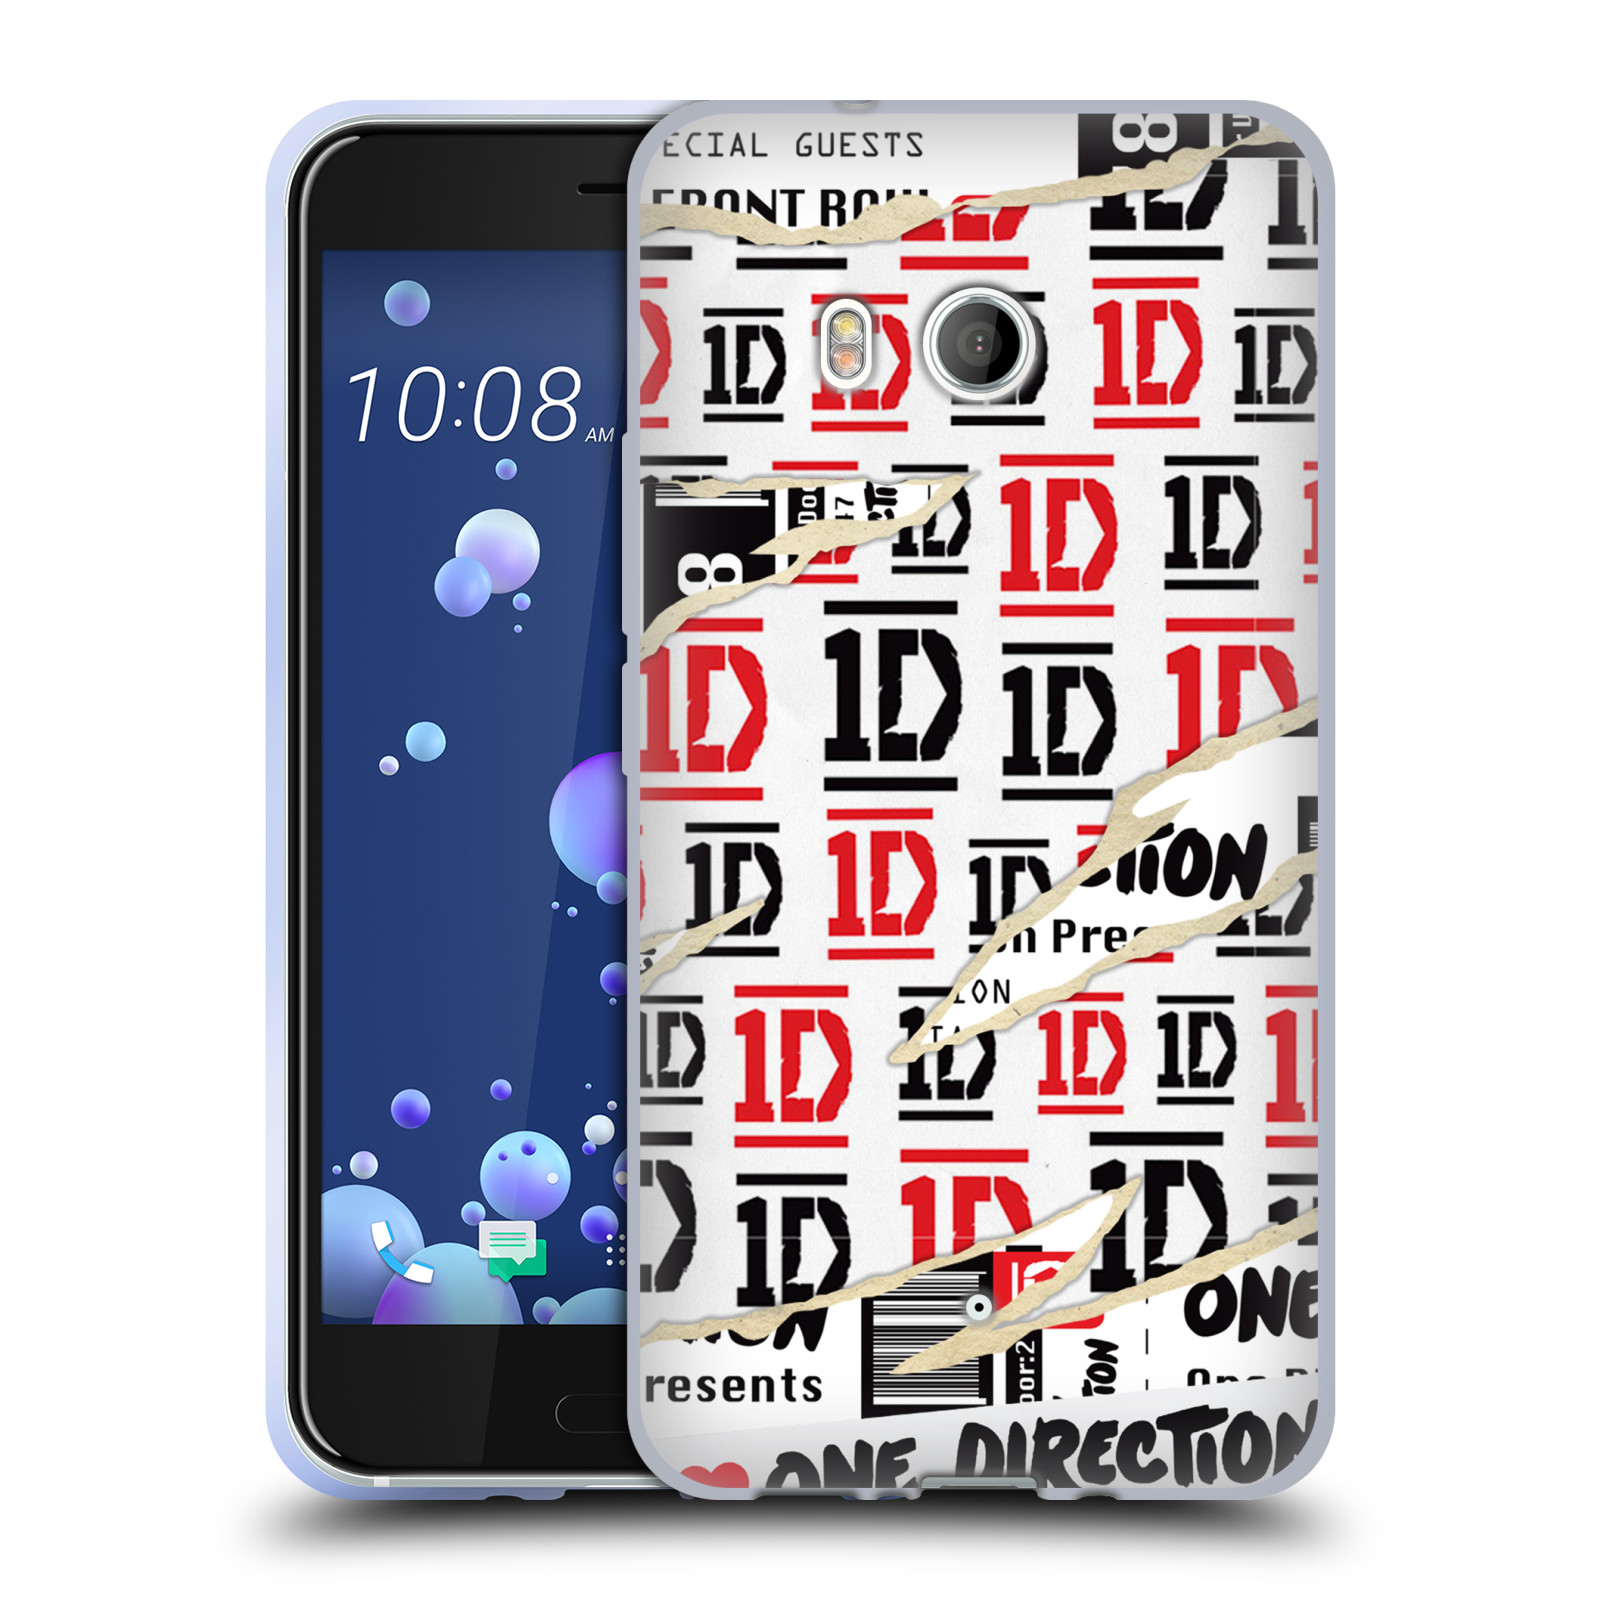 OFFICIAL-ONE-DIRECTION-TICKET-LOVE-SOFT-GEL-CASE-FOR-HTC-PHONES-1